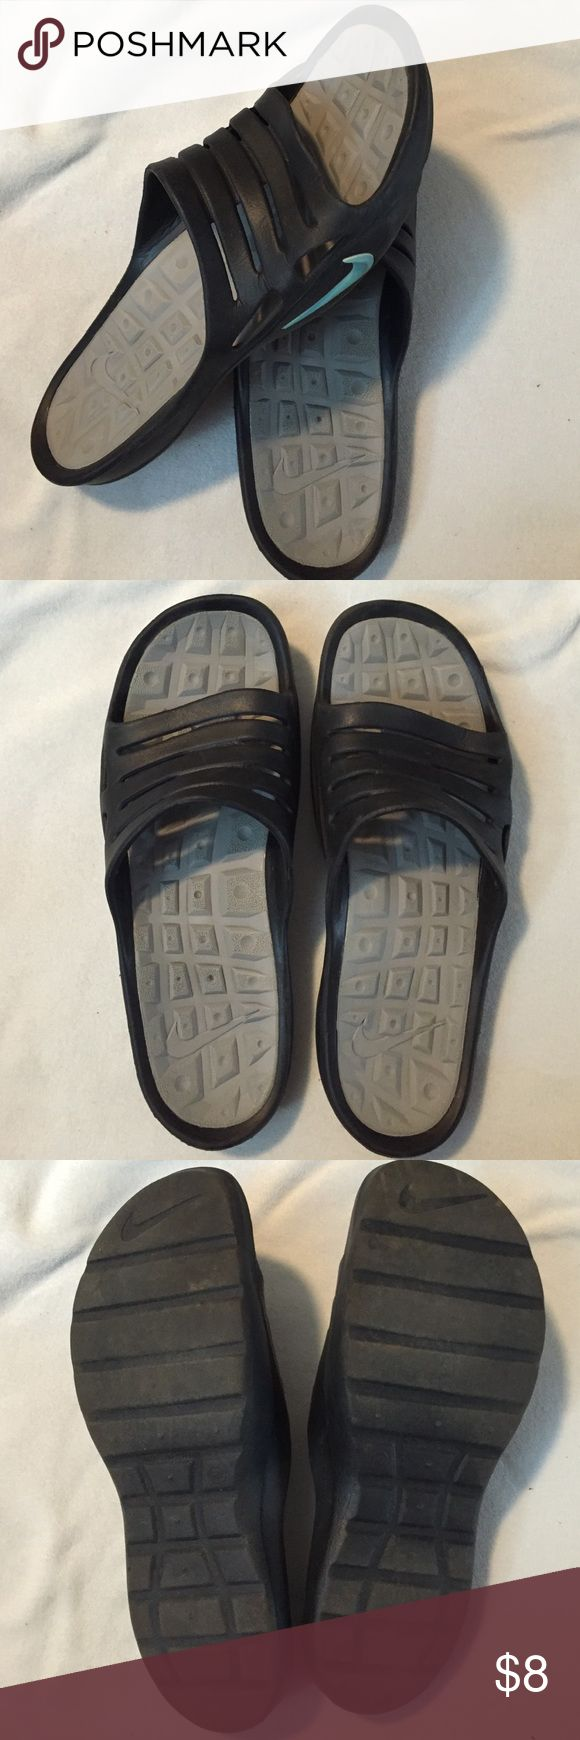 Nike Sandal This pair of Nike sandals are black with light blue nike swoosh. They have light wear. Make an offer! Nike Shoes Sandals